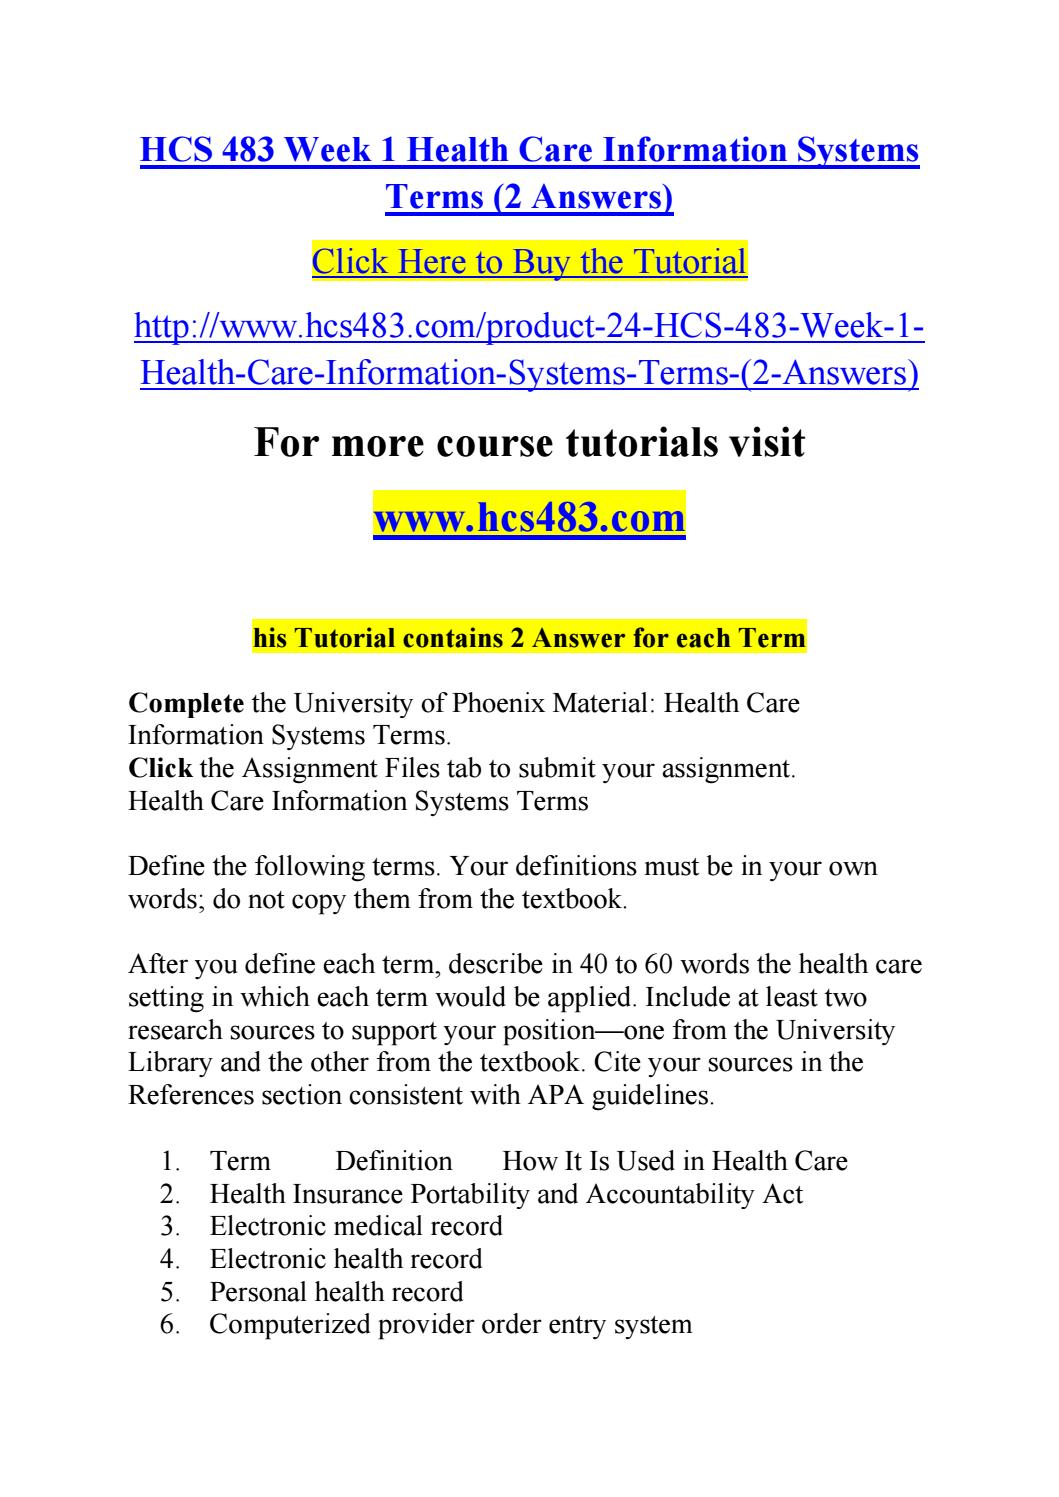 hcs 212 week1 health care terms Hcs 212 week 2 health care terms worksheet complete the week 2 health care terms worksheetdefine key health care terms and use those terms appropriately please put the key term in bold letters when using it in a sentence.